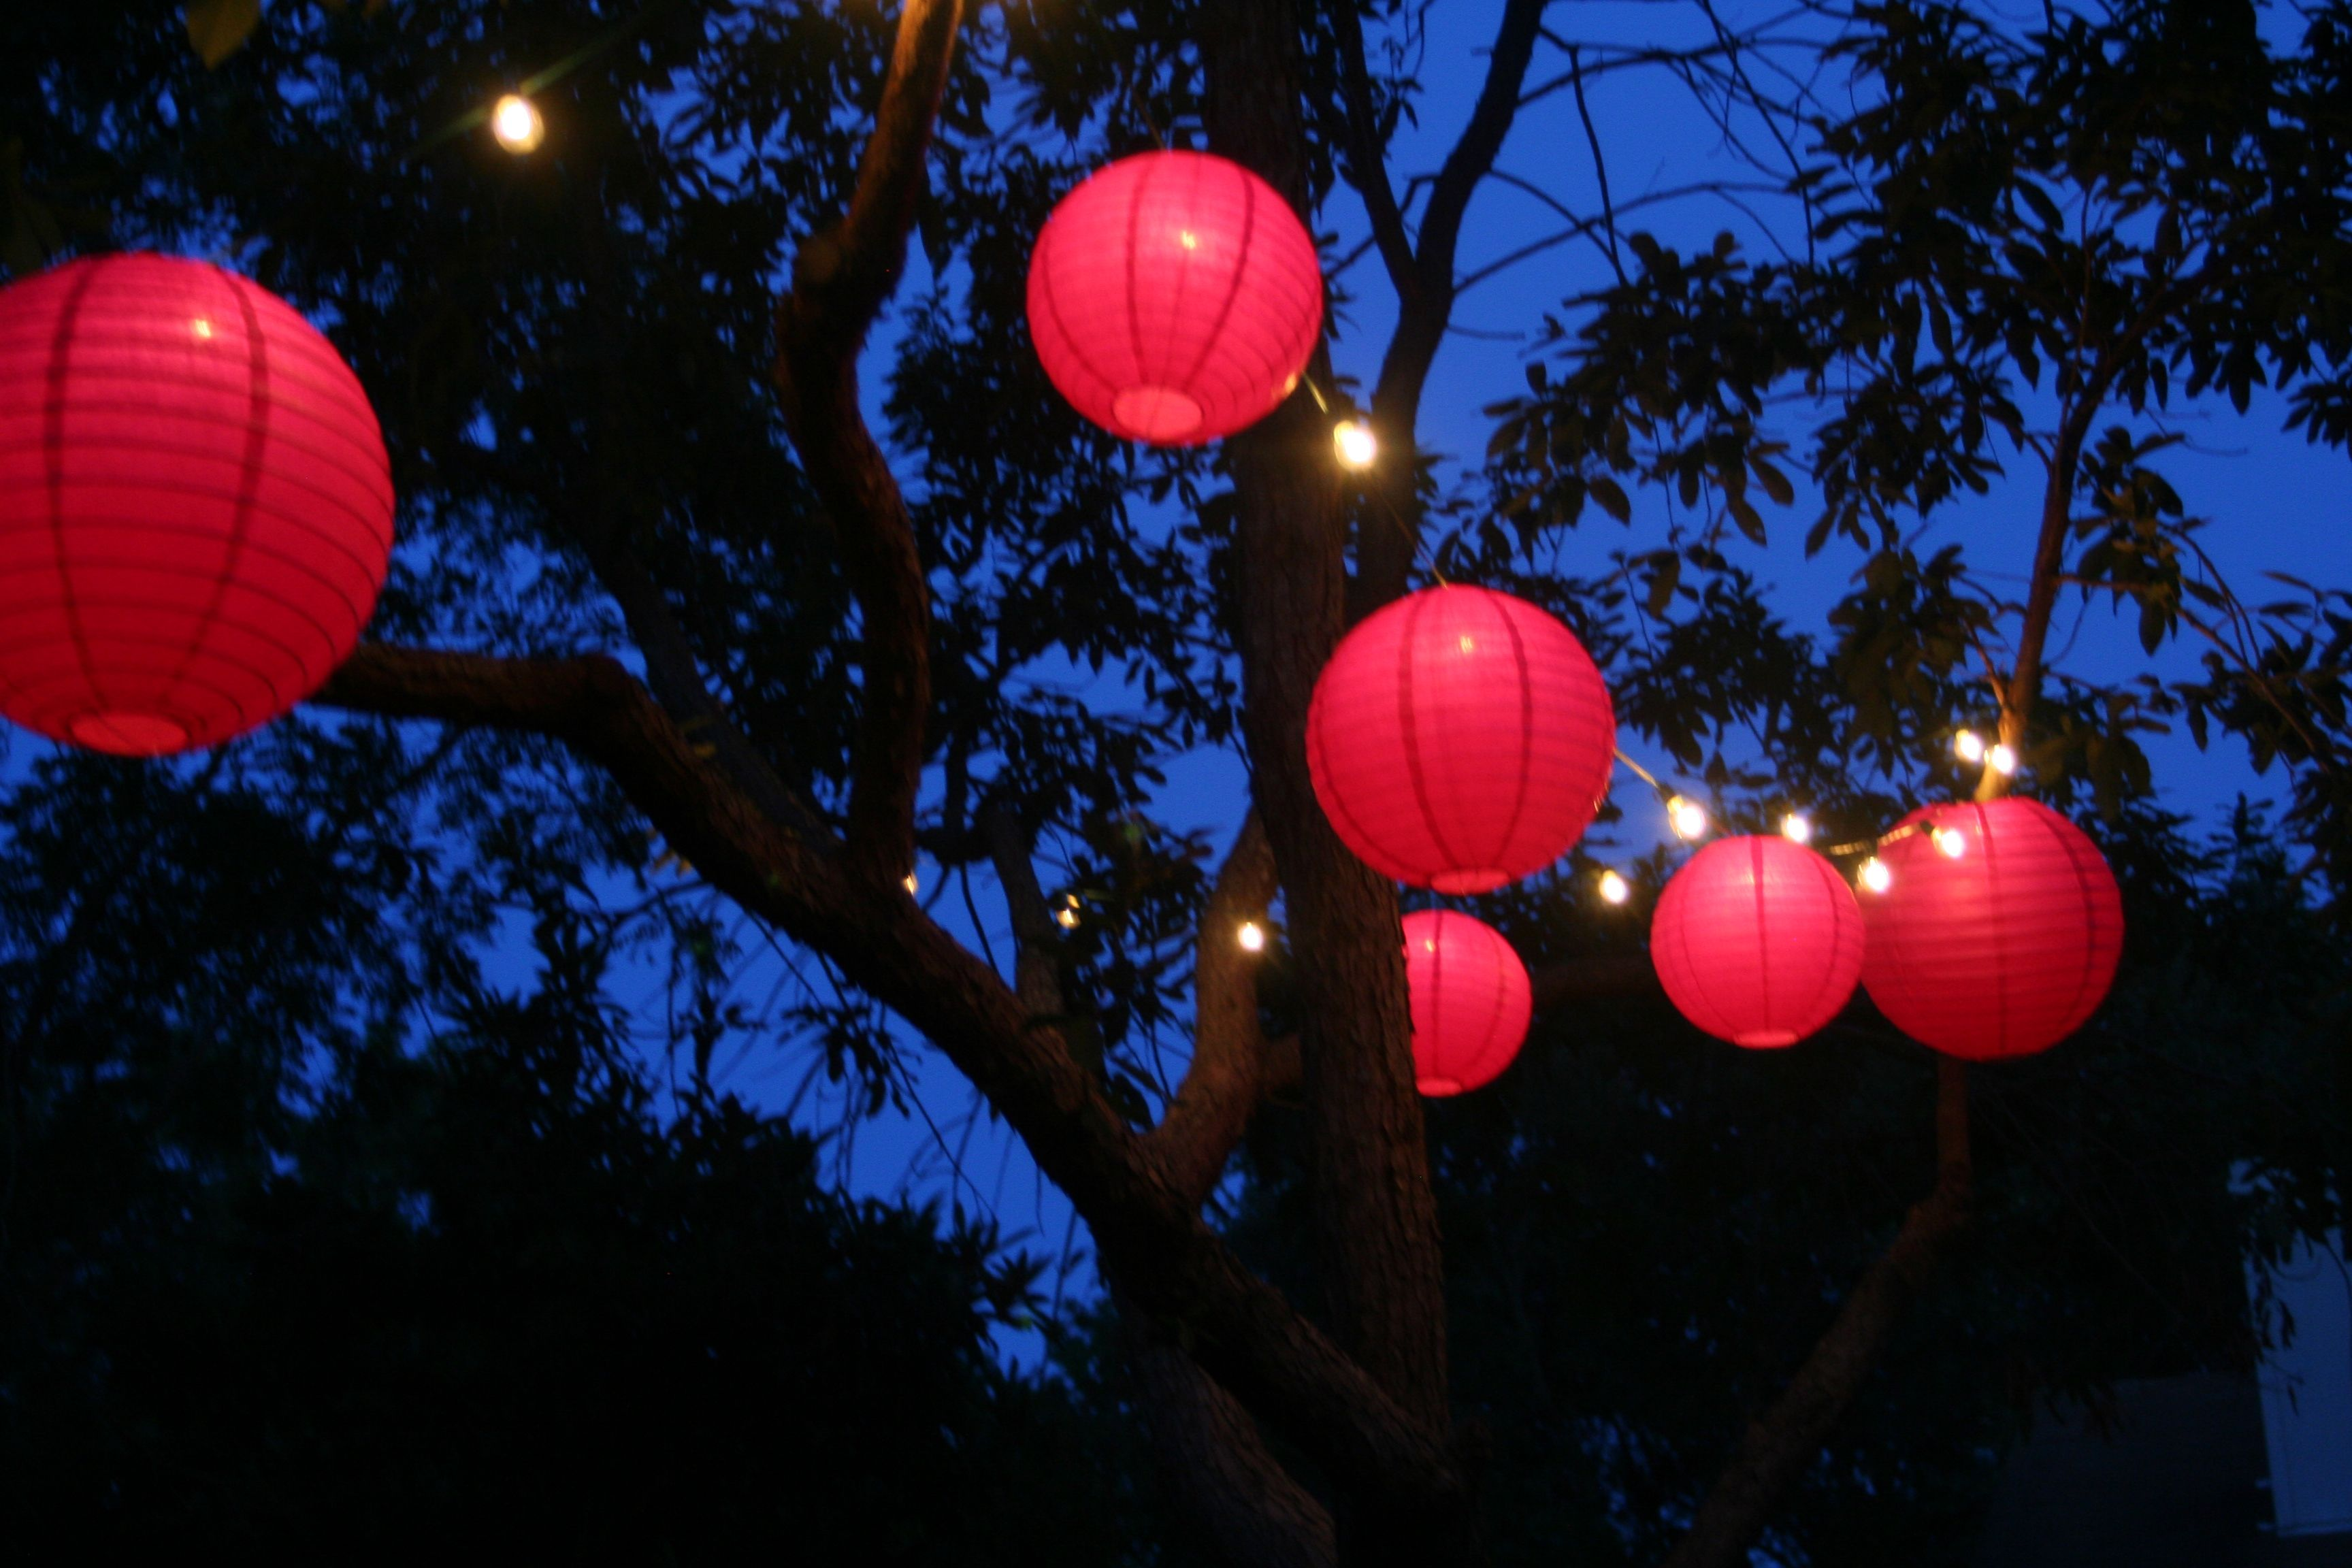 Paper Lanterns Walmart Inspiration Backyard Decorlights And Pink Paper Lanterns They Have Them At Inspiration